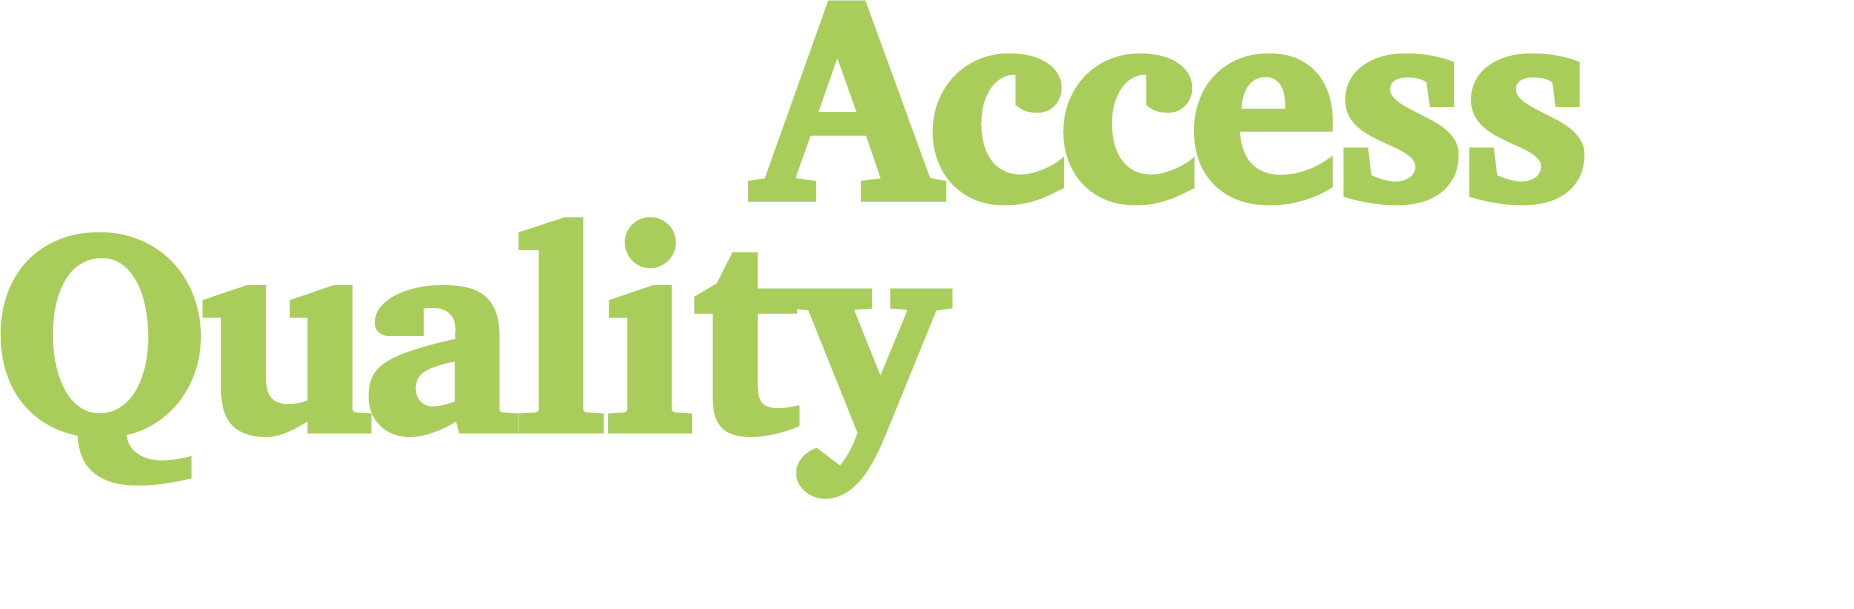 Better Access to Quality EyeCare